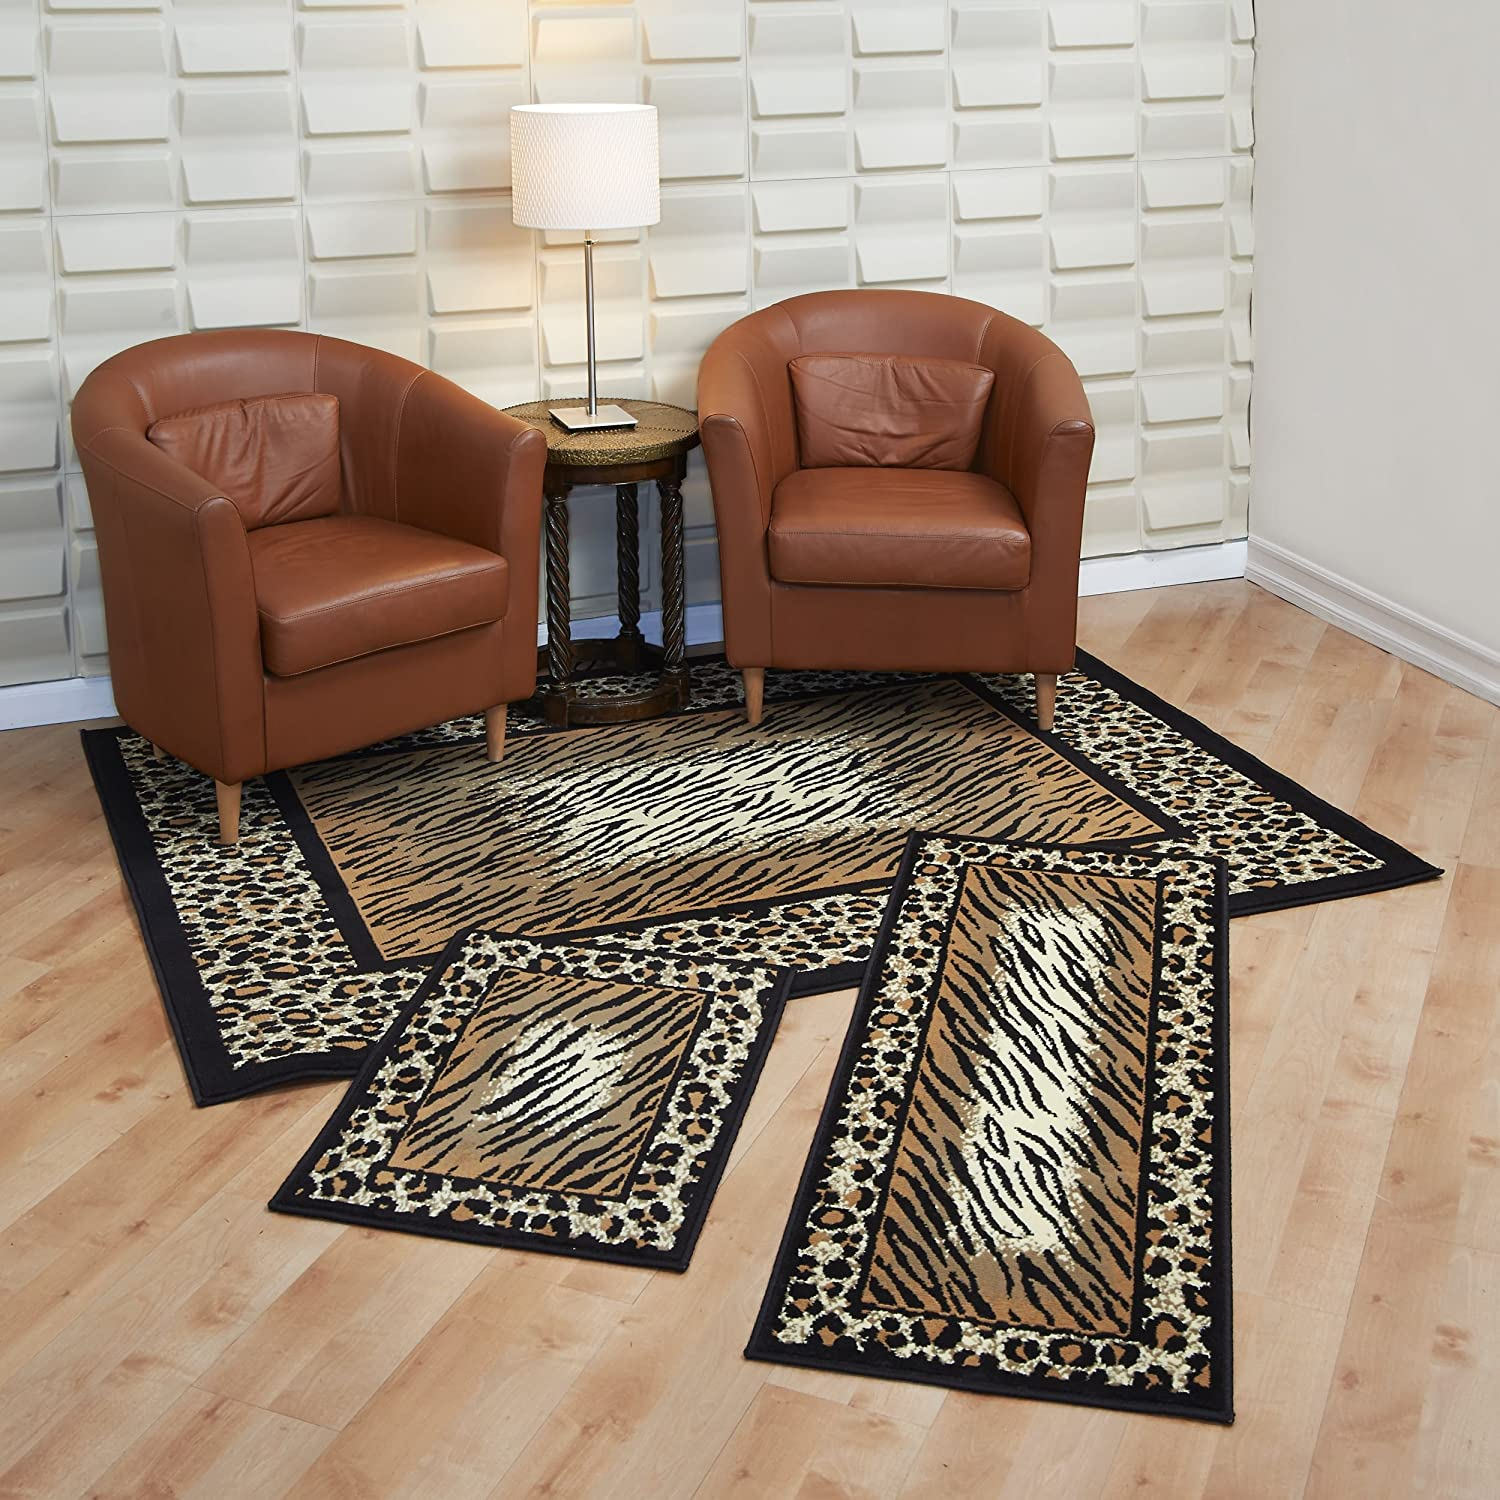 Amazon com maya collection 3 pc area rug set size 5x7 rug 22x59 runner 22x31 mat leopard and tiger kitchen dining